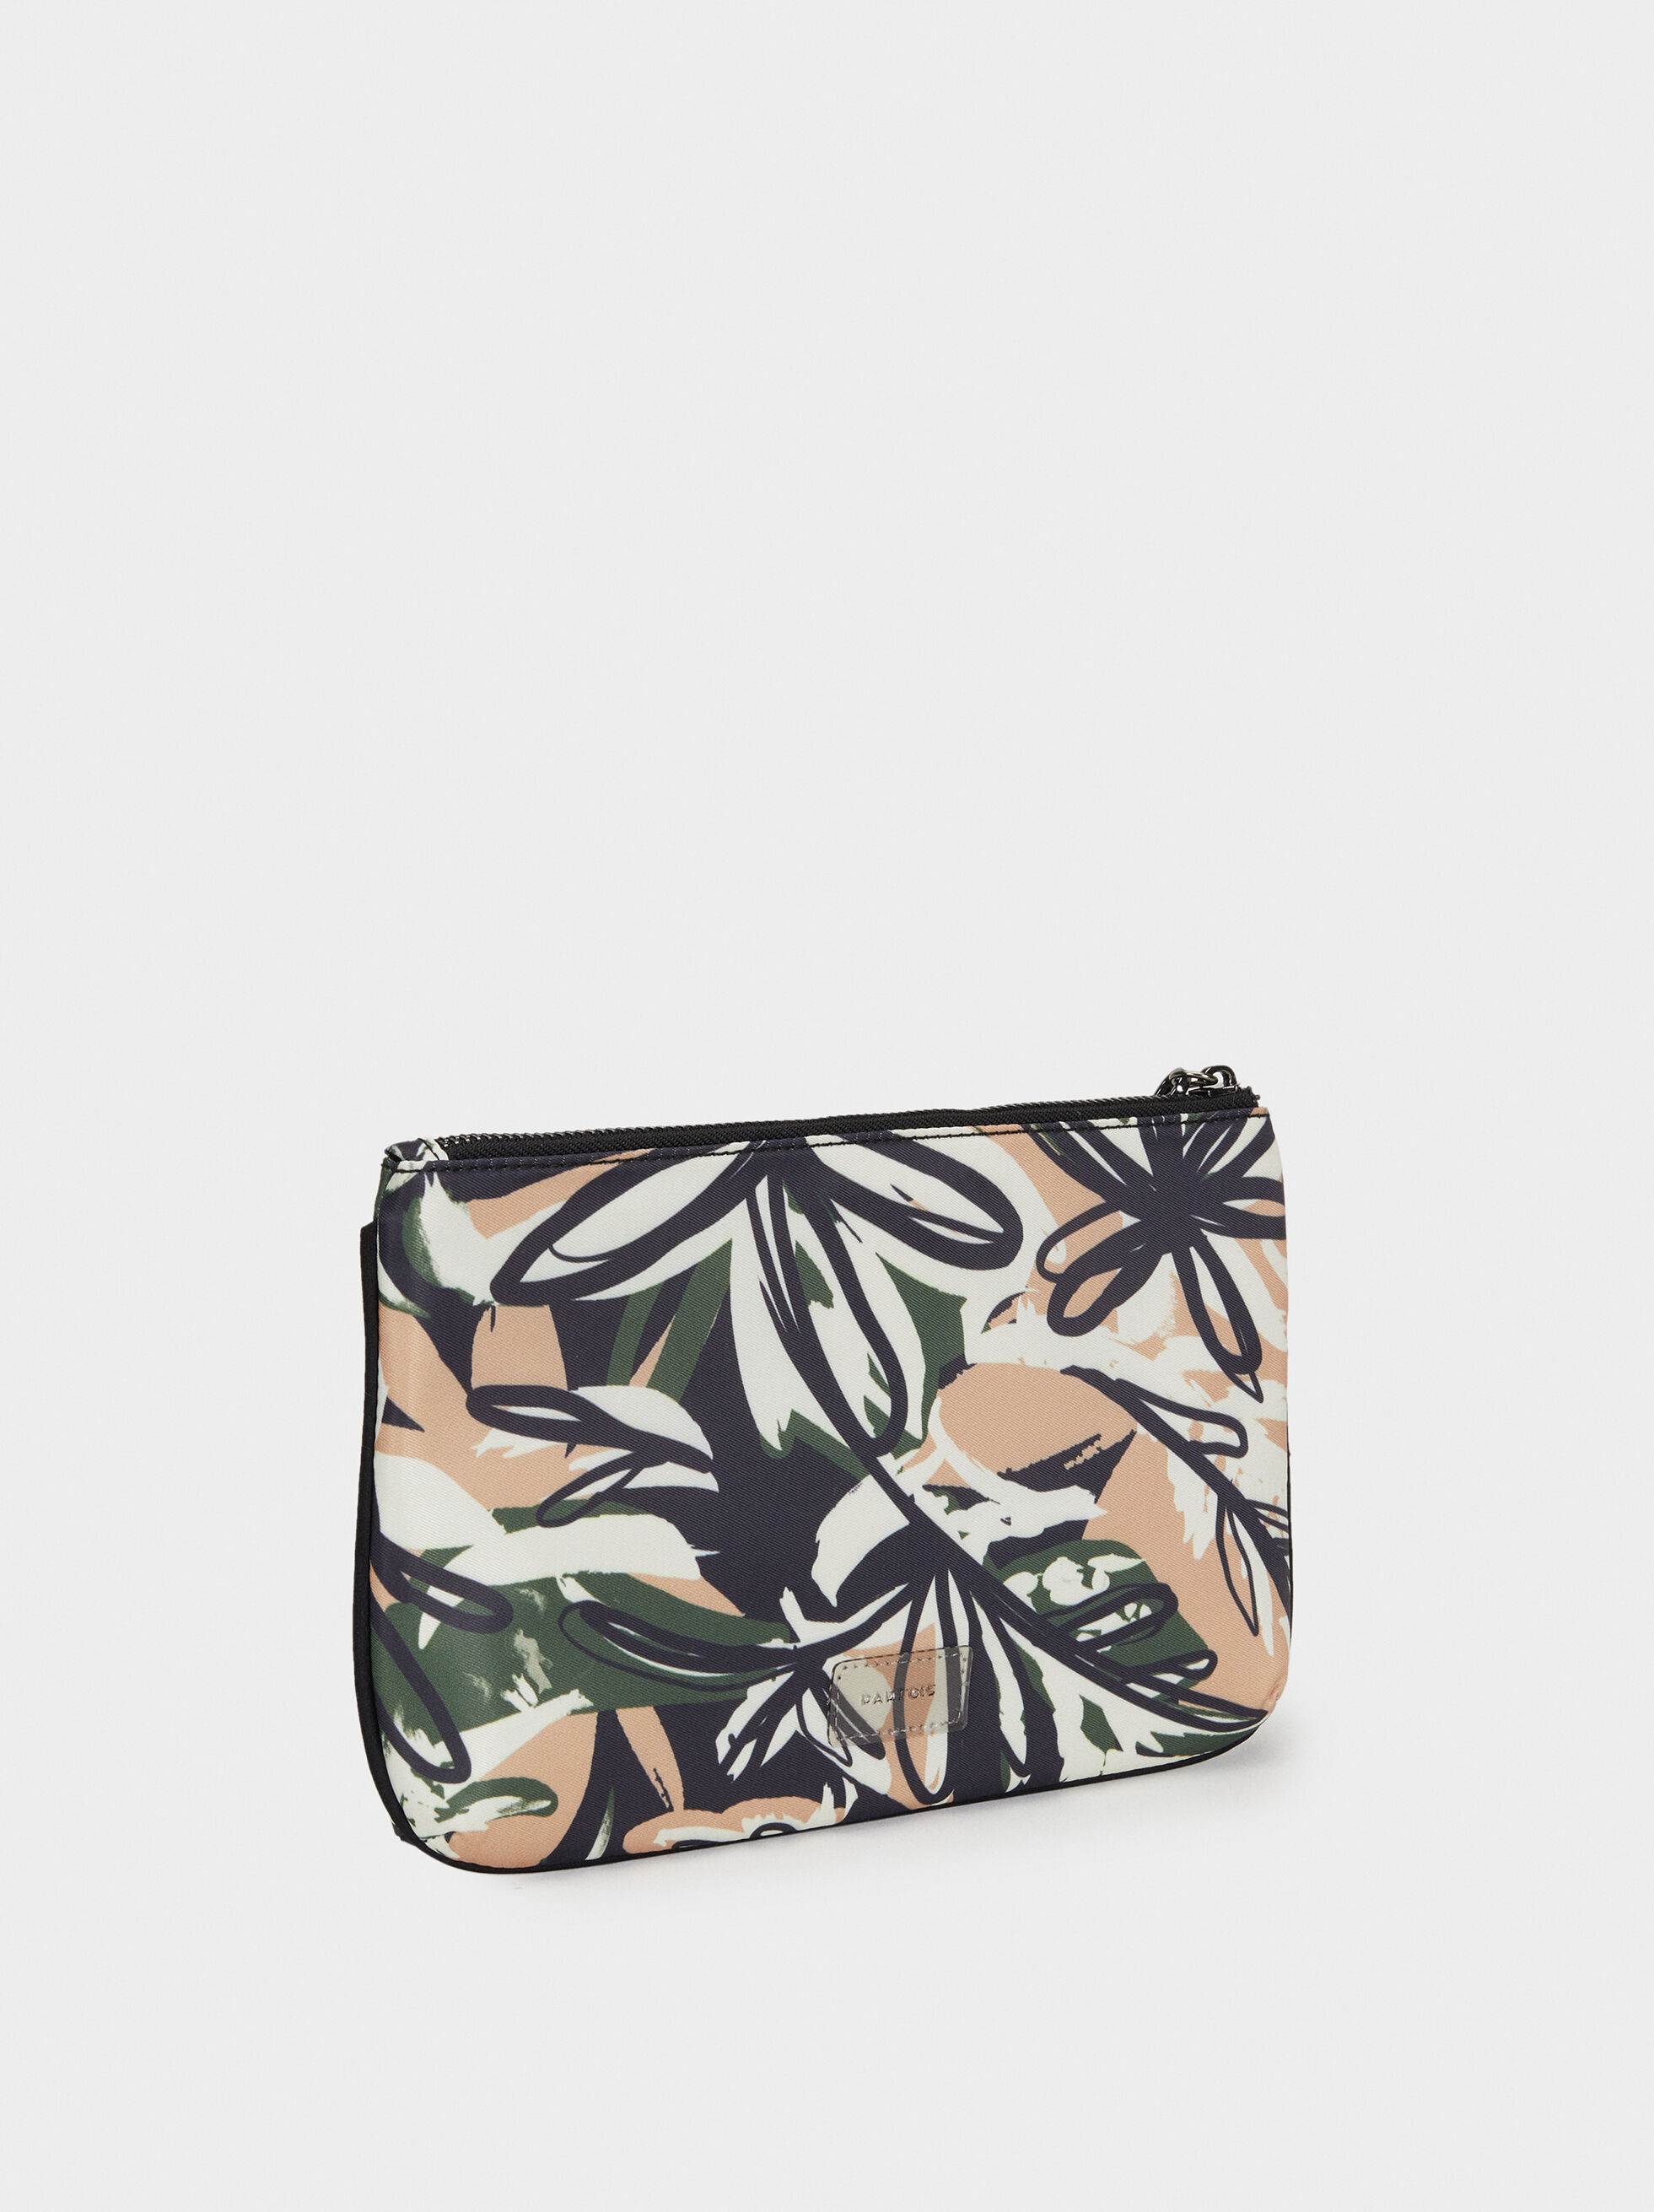 Printed Nylon Toiletry Bag, Black, hi-res